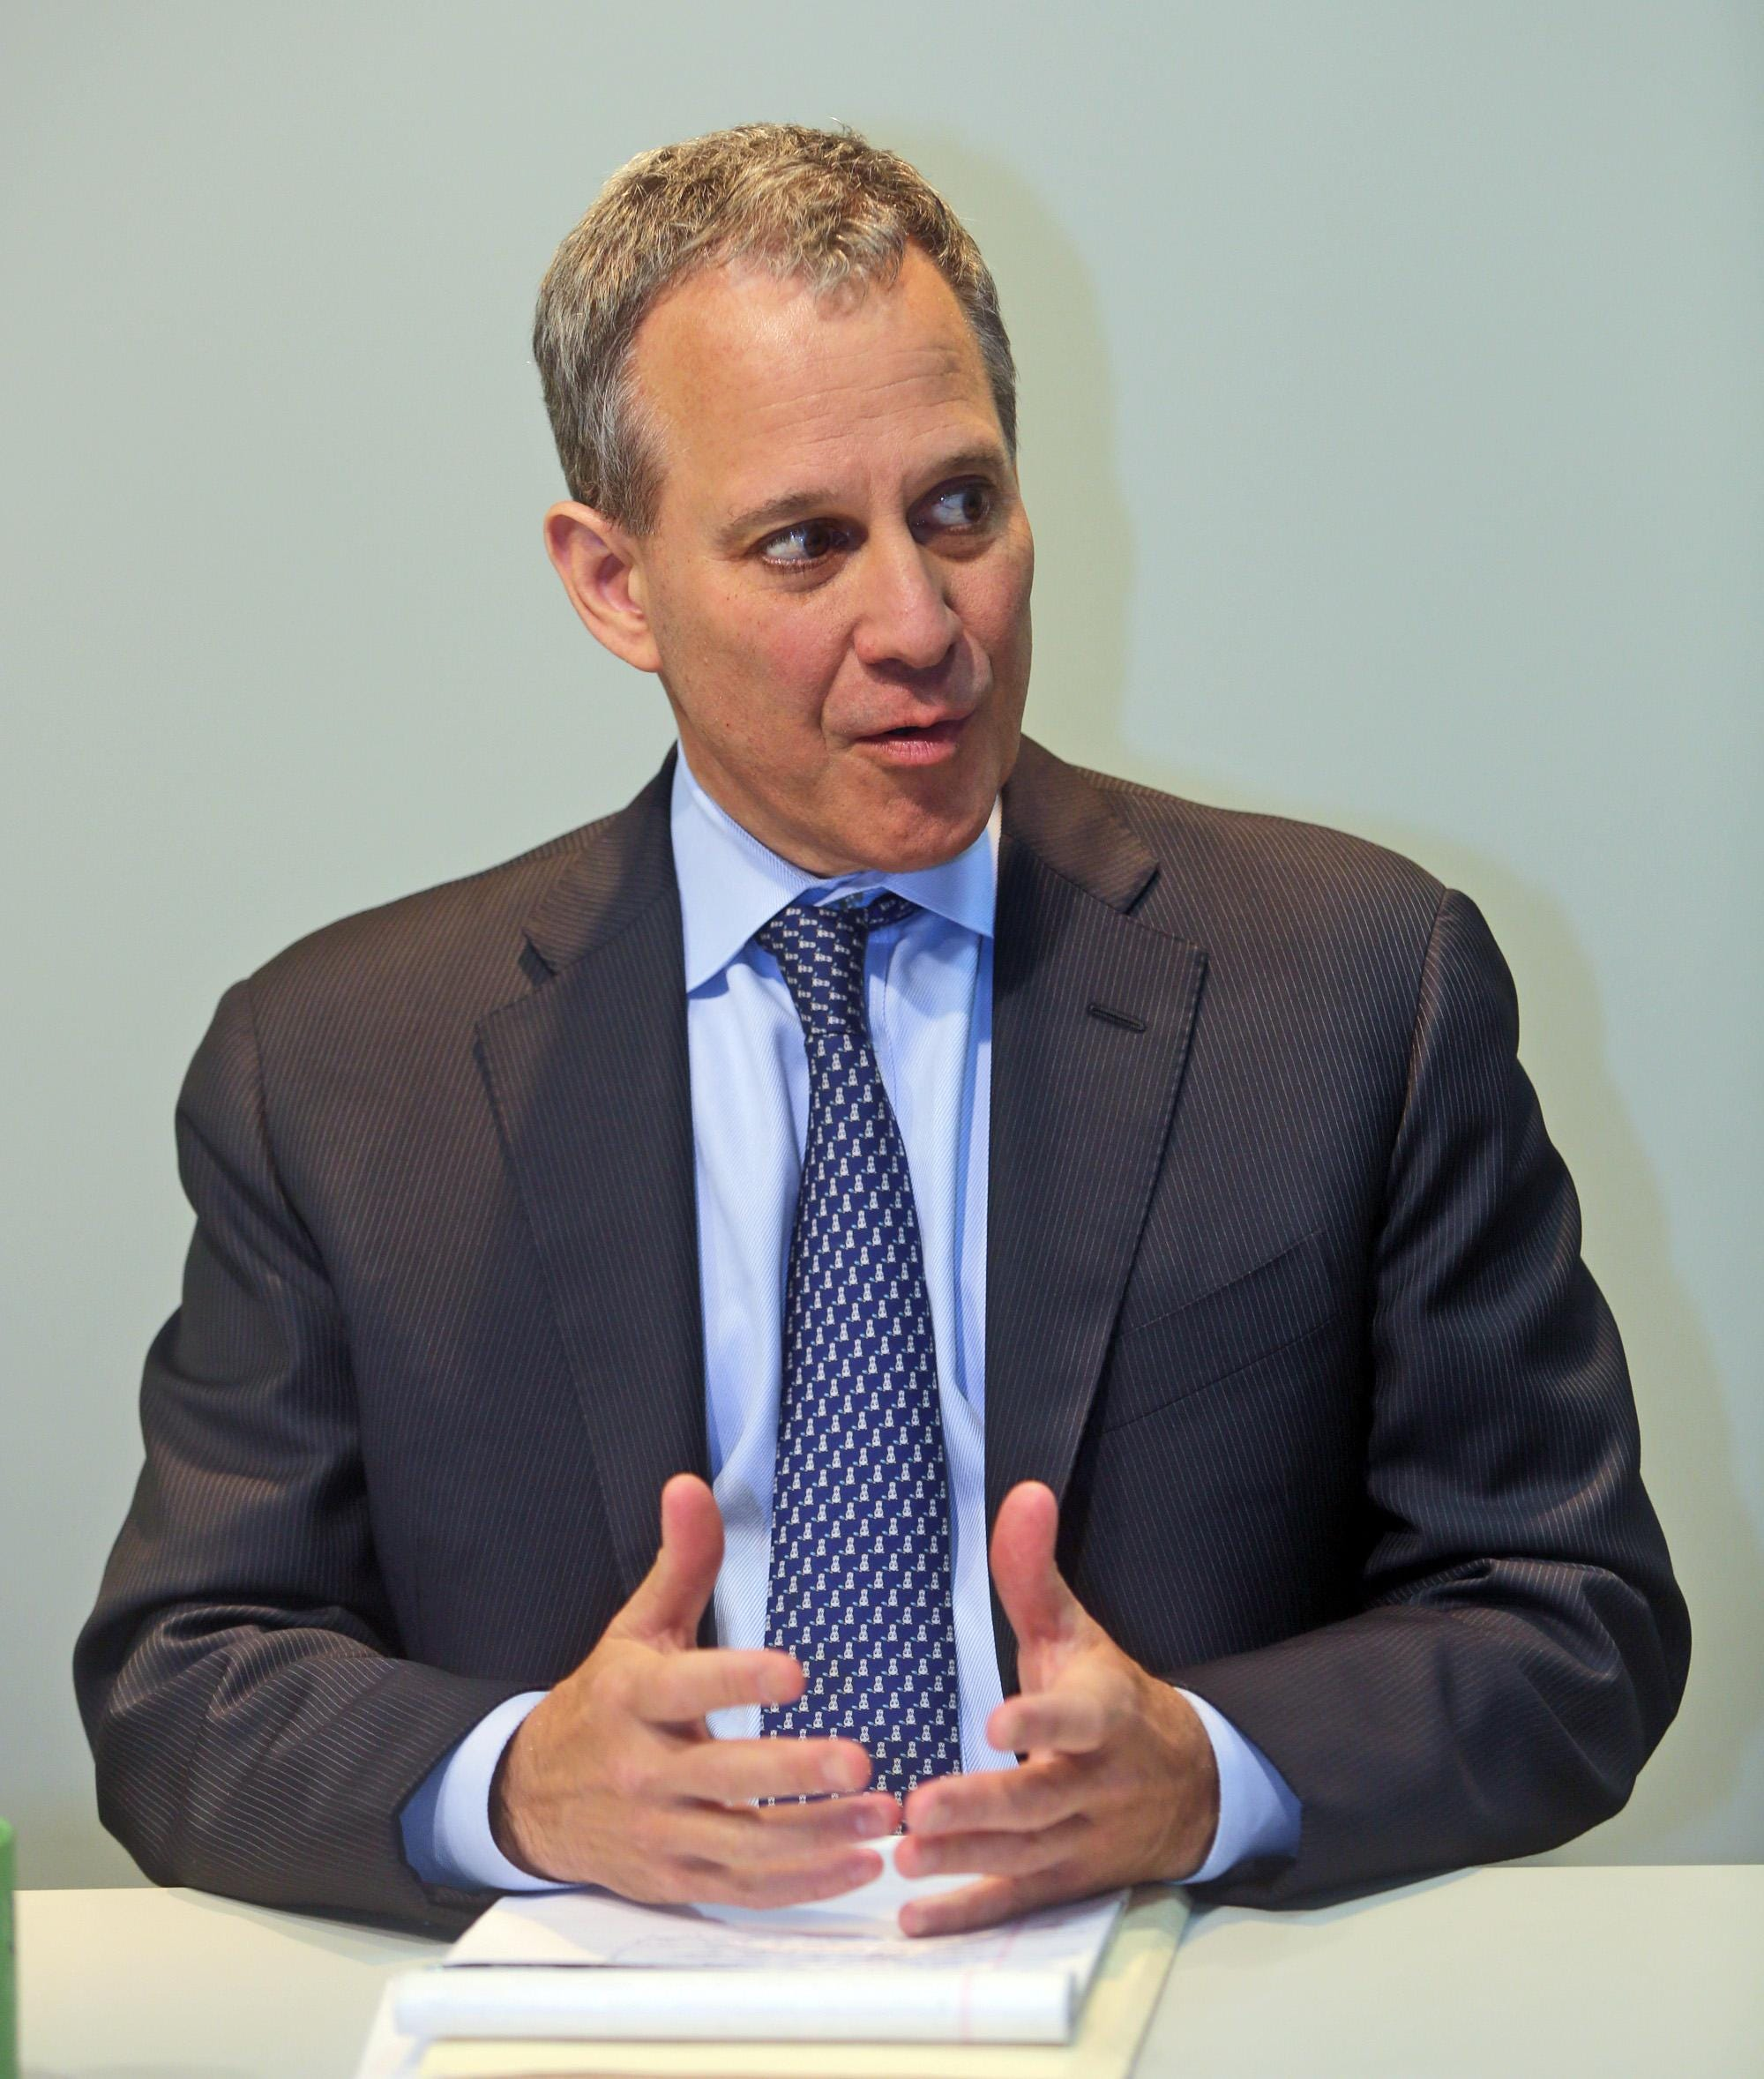 N.Y. AG Eric Schneiderman resigned amid violence accusations. Now what happens?